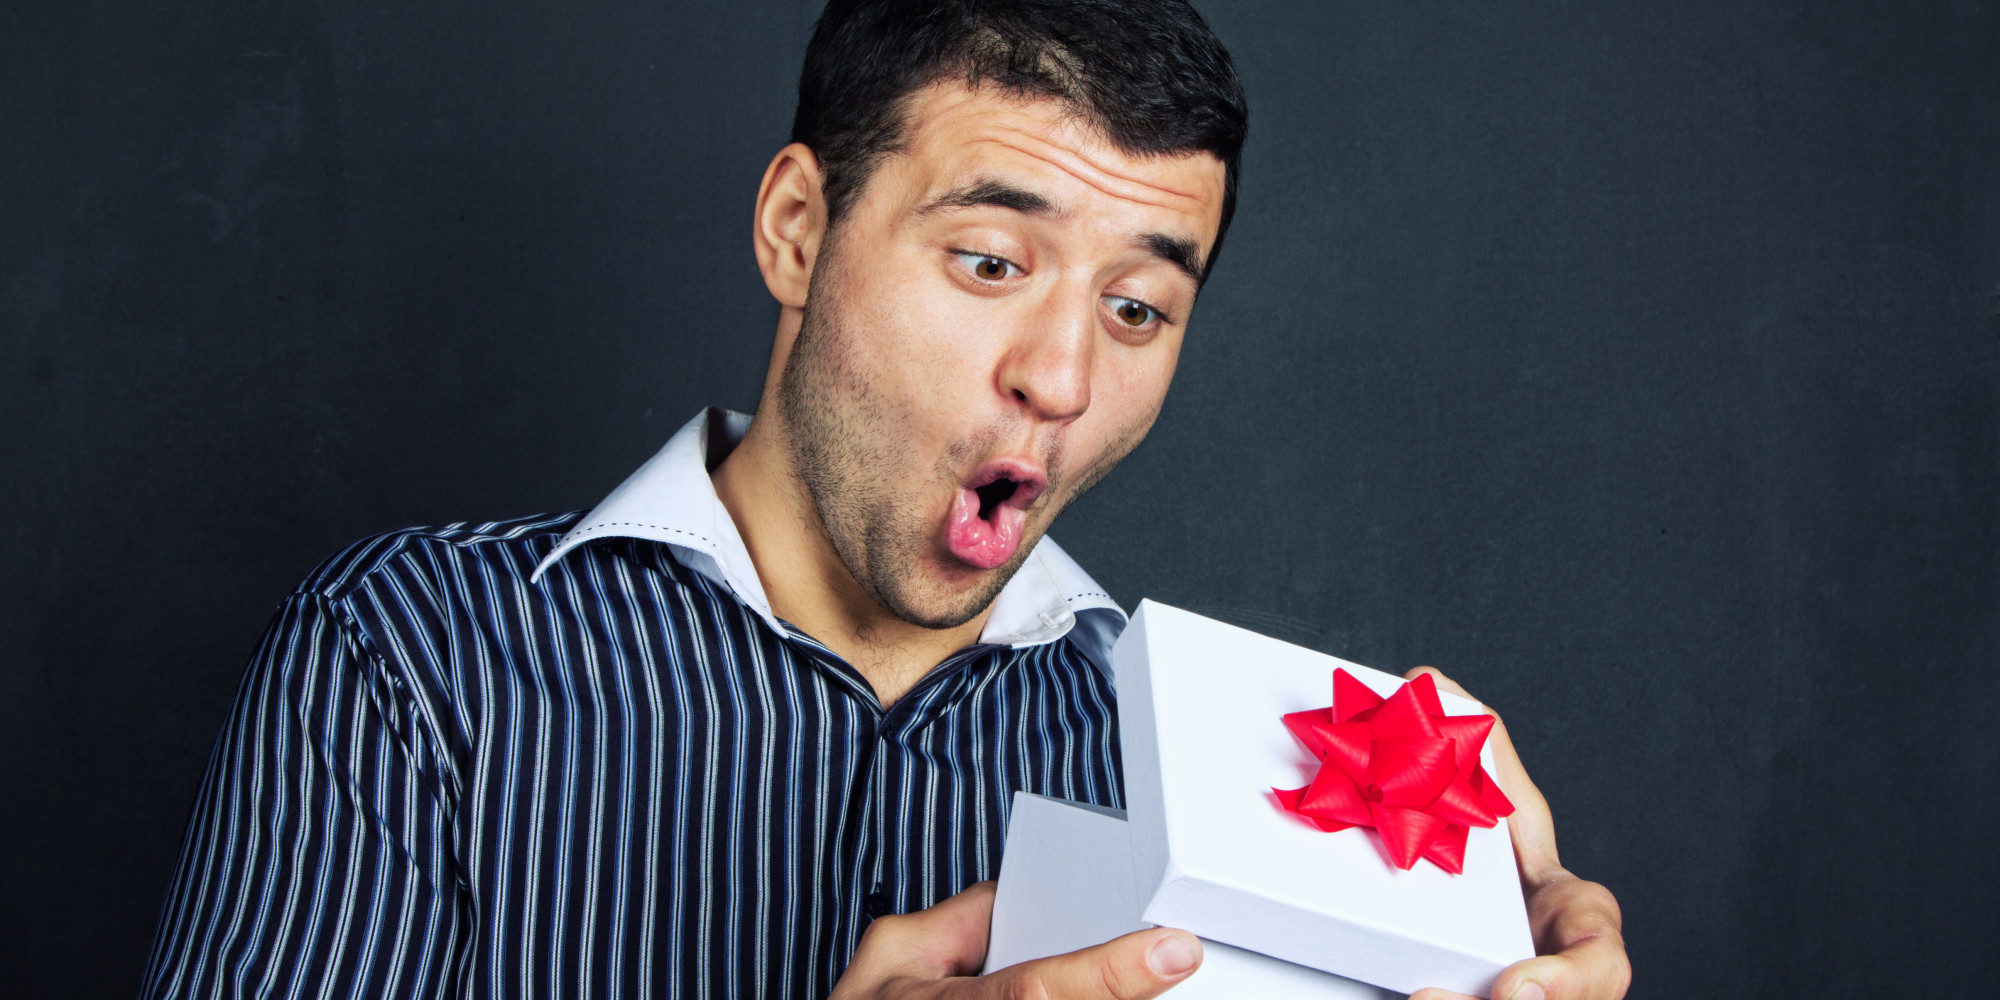 26 Incredibly Funny Gifts for Men